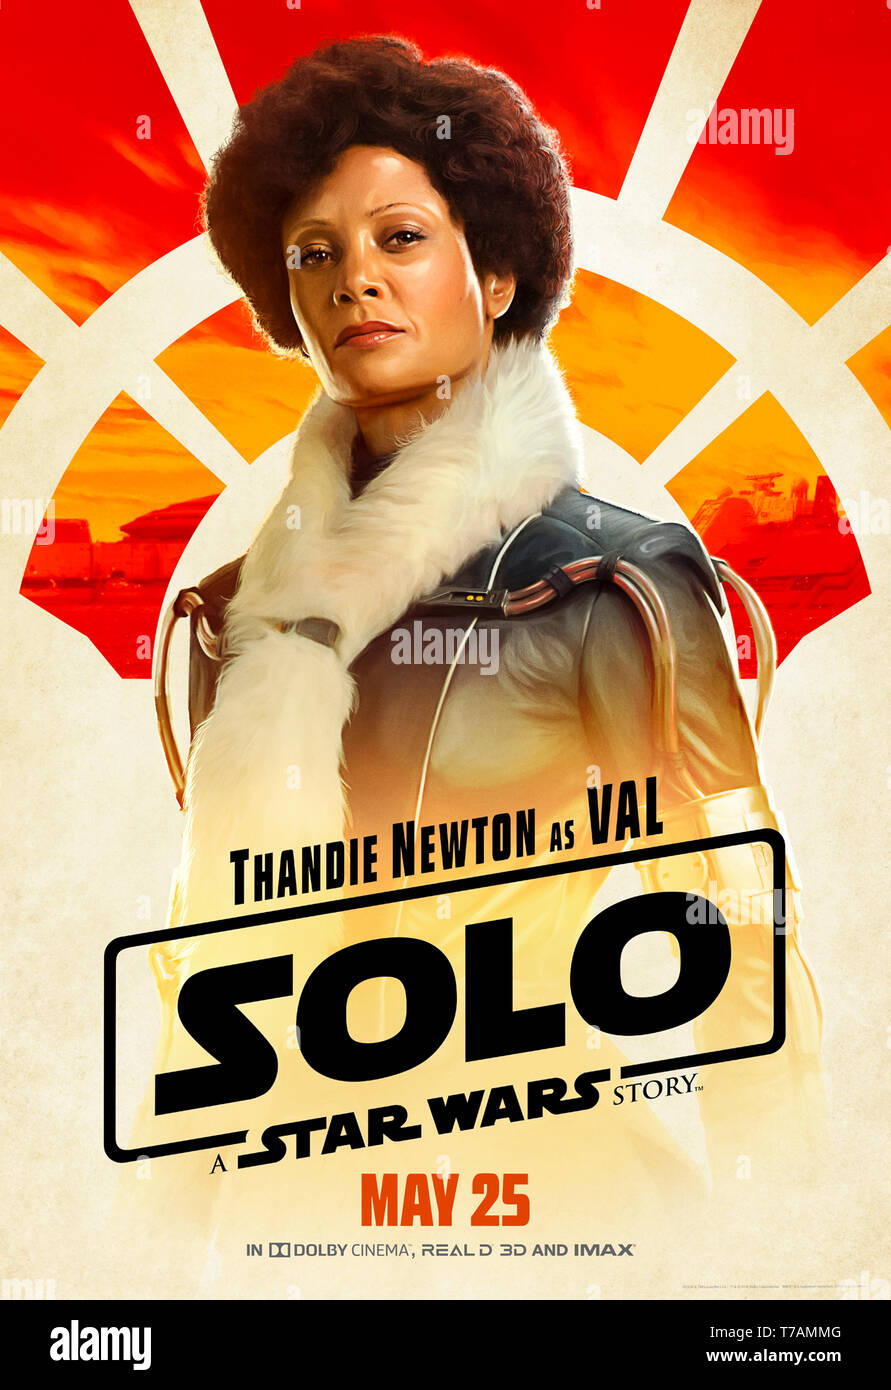 Solo A Star Wars Story 2018 Directed By Ron Howard And Starring Thandie Newton As Val Stock Photo Alamy